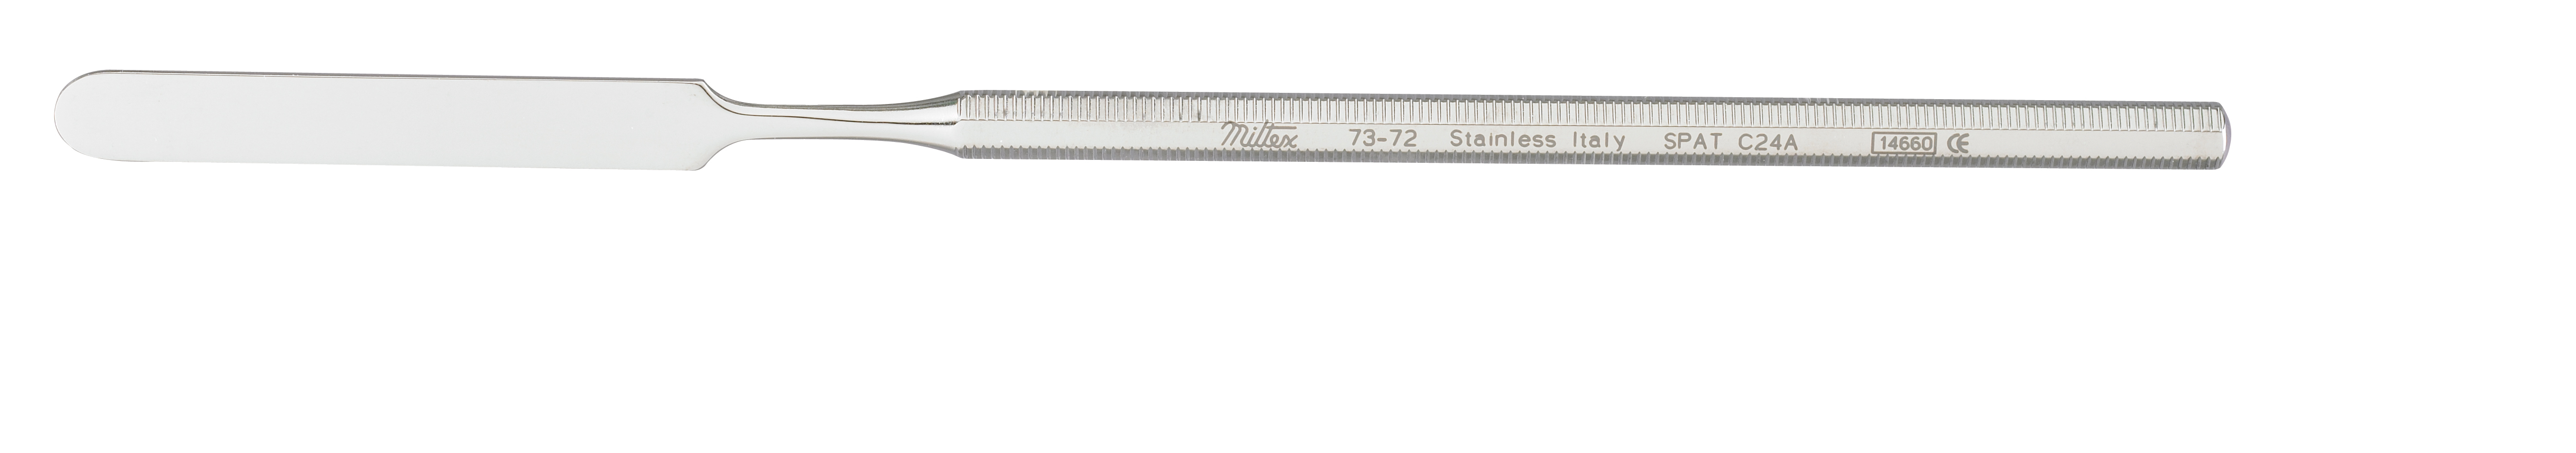 no-24a-cement-spatula-rigid-73-72-miltex.jpg